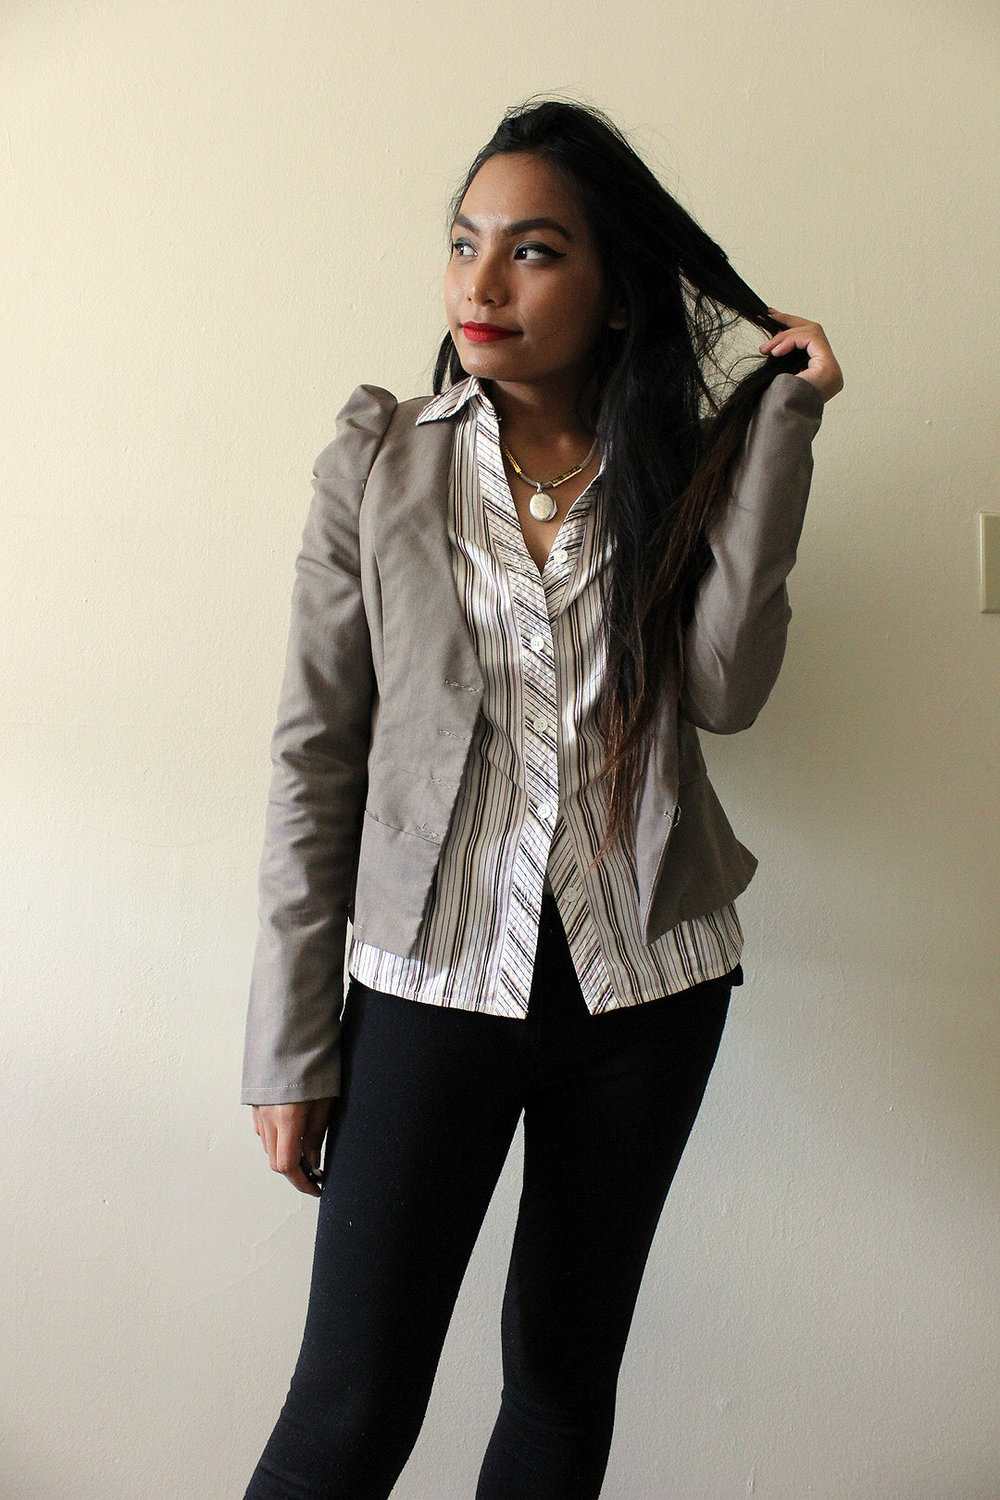 Unique-Shoulders-Blazers-Button-Down-Shirt-Work-Appropriate-Office-Wear-Style-Blogger-Fashionista-LINDATENCHITRAN-9-1616x1080.jpg